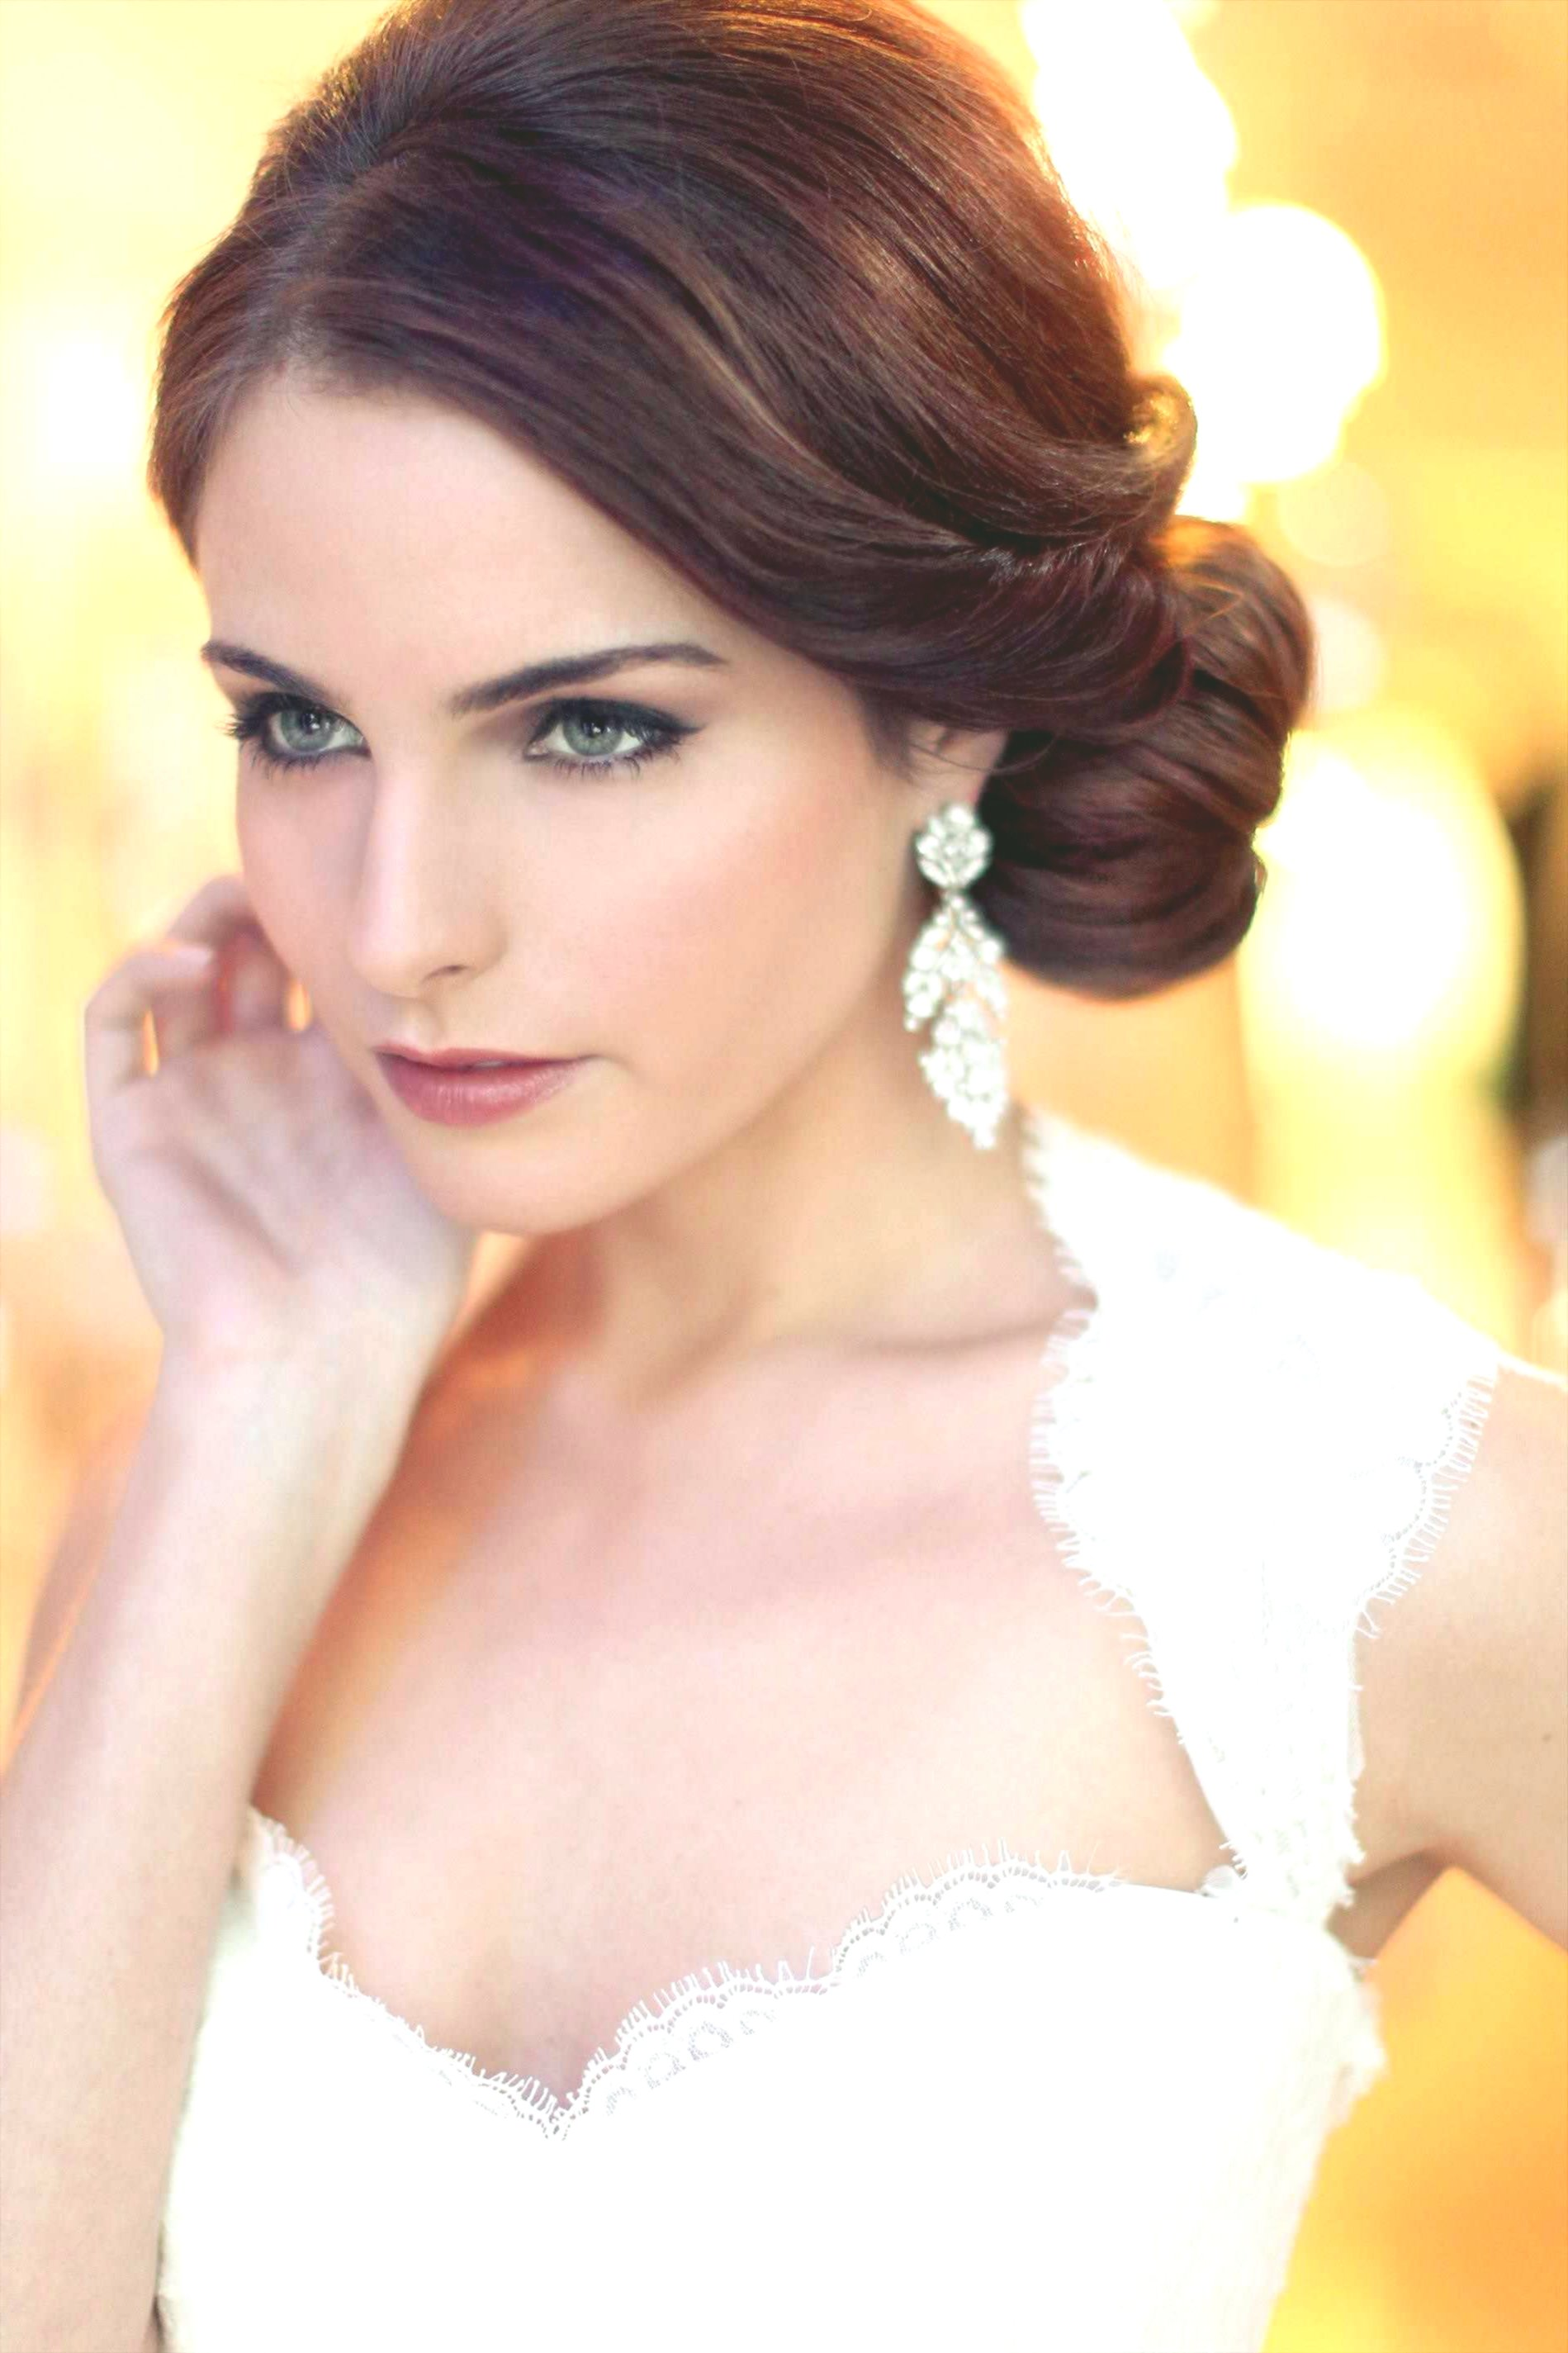 luxury estates hairstyles portrait-charming registry office hairstyles photography